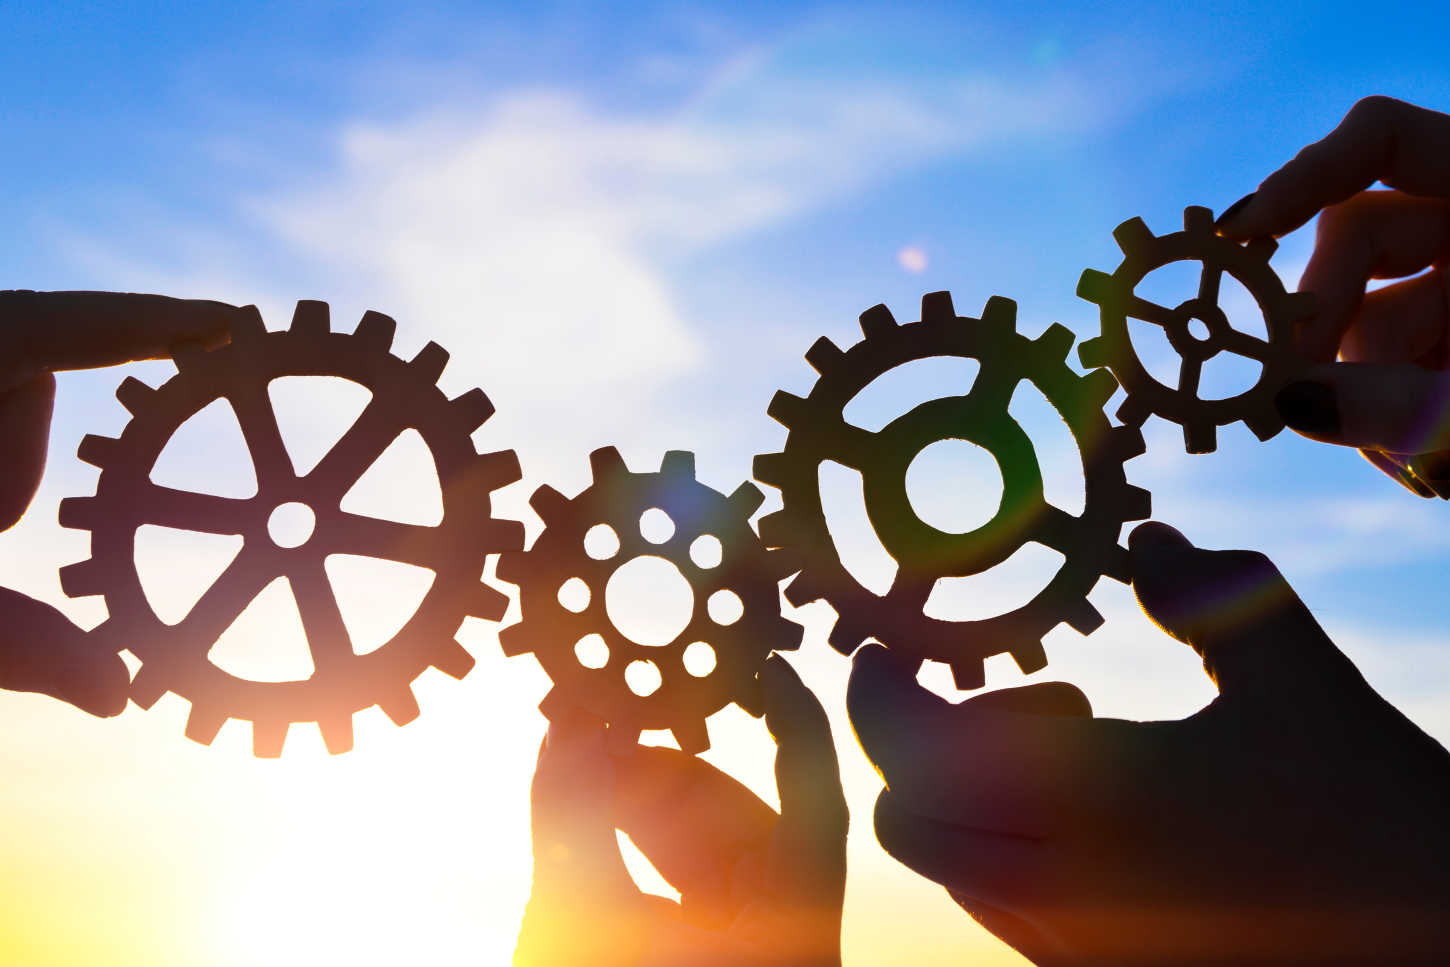 Photo of gears held towards the sky